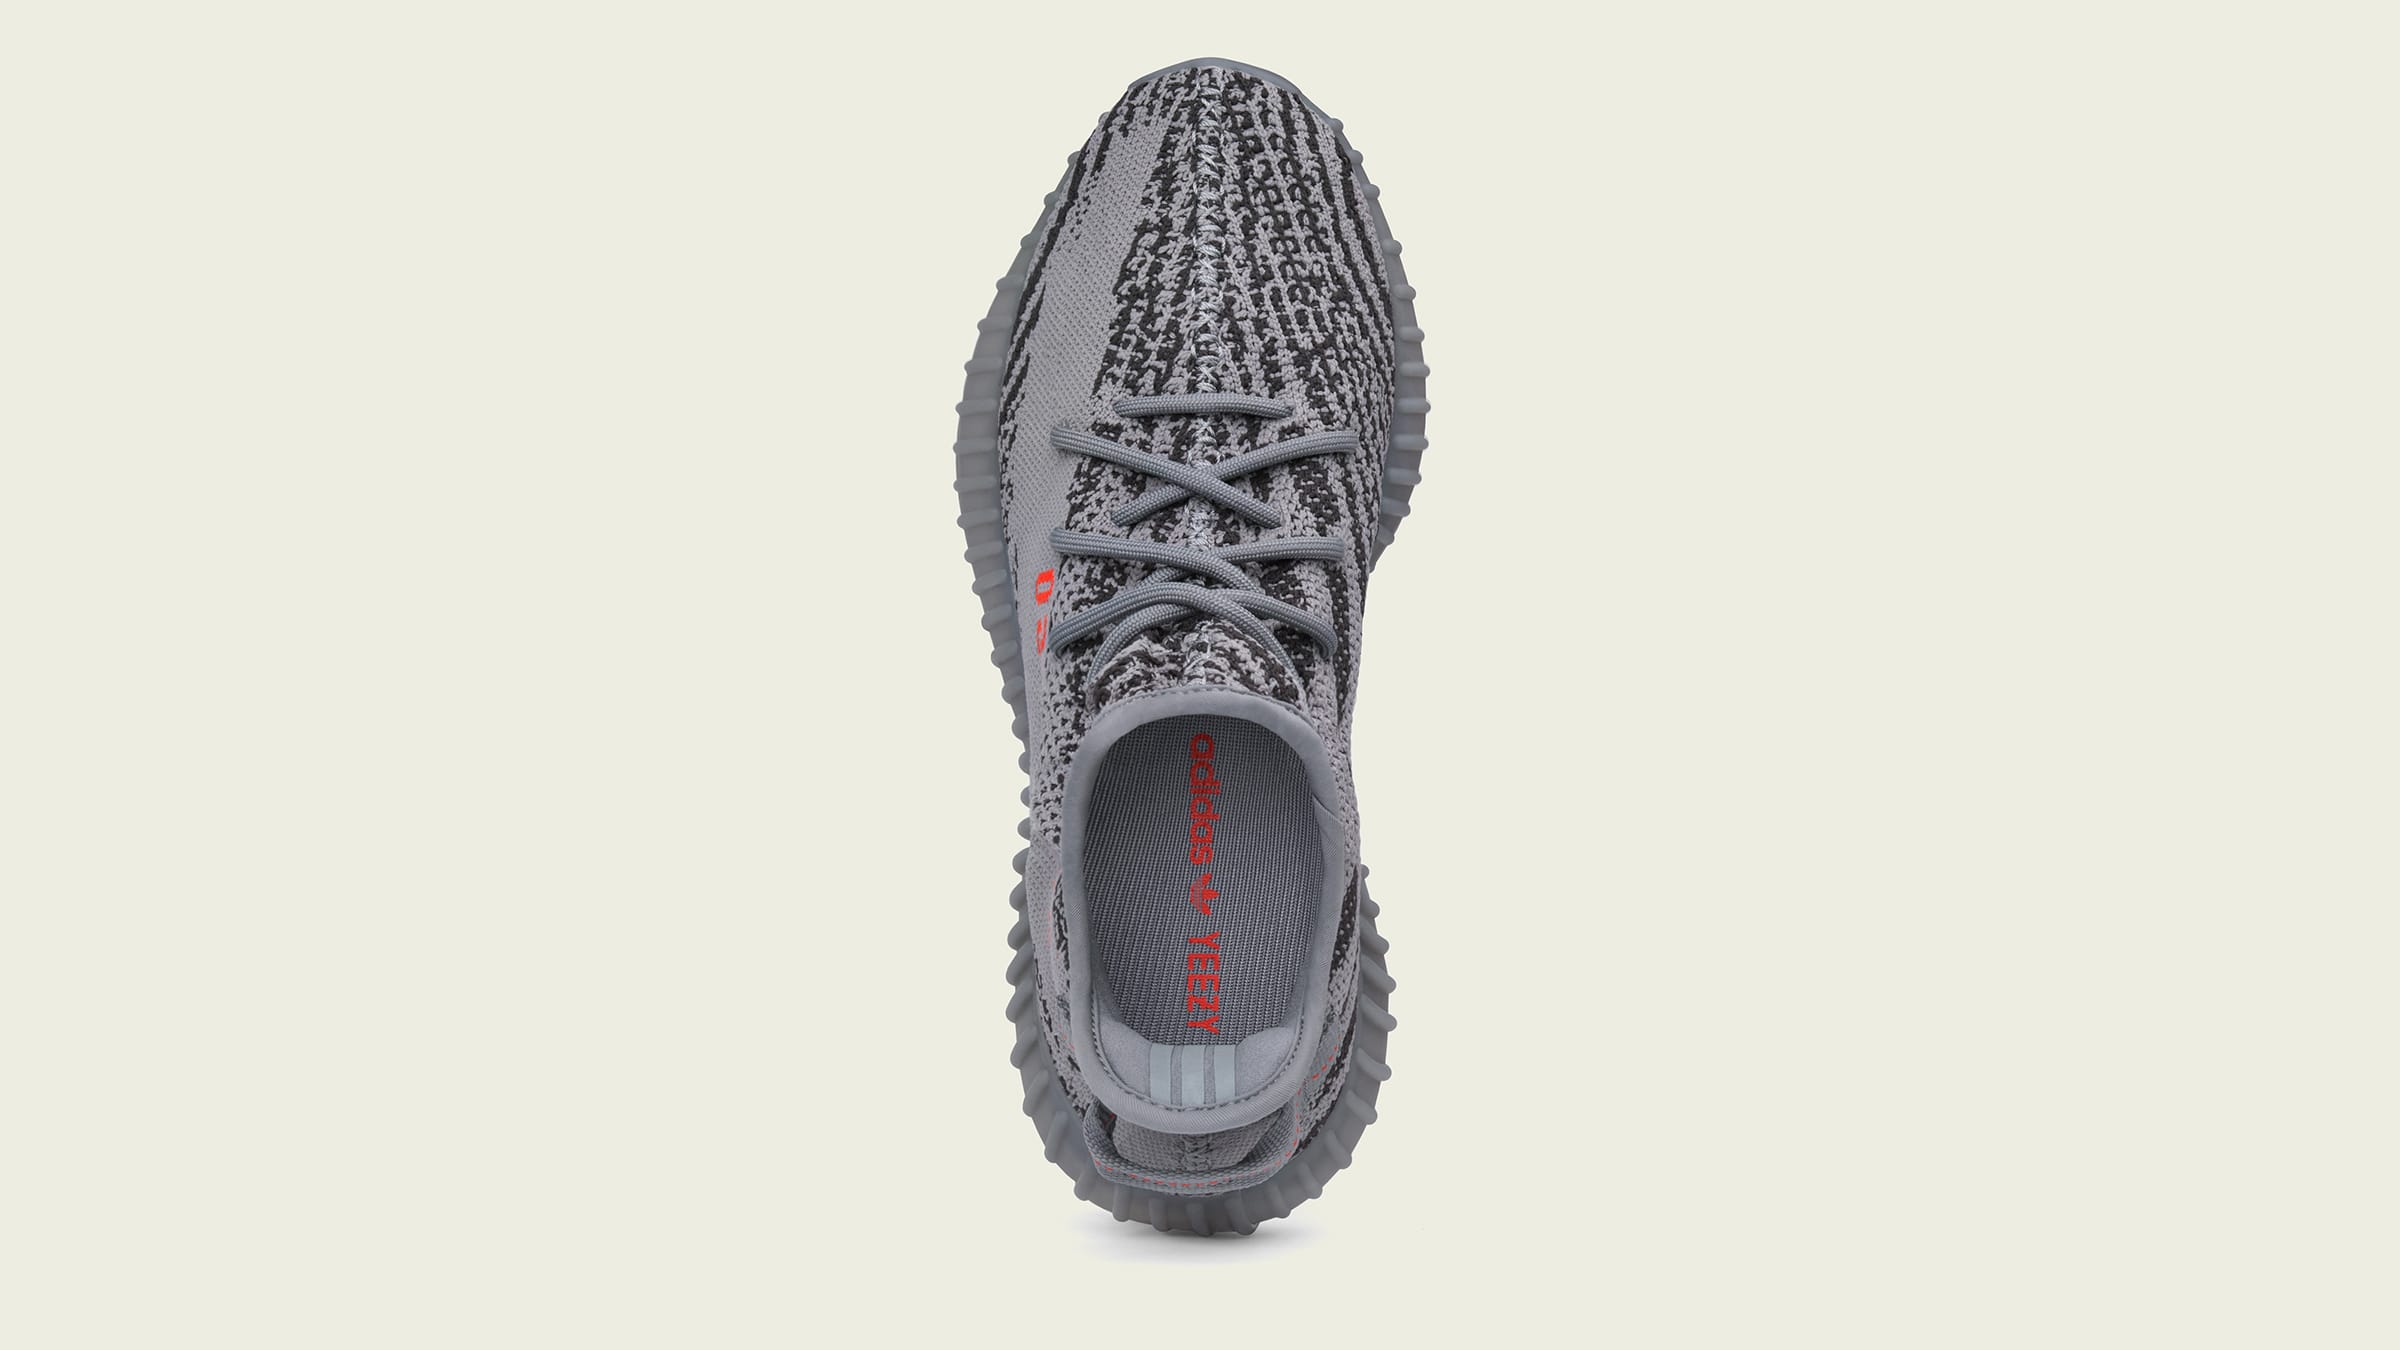 37125e0c9102bd The shoe that began the Yeezy Boost 350 V2 movement